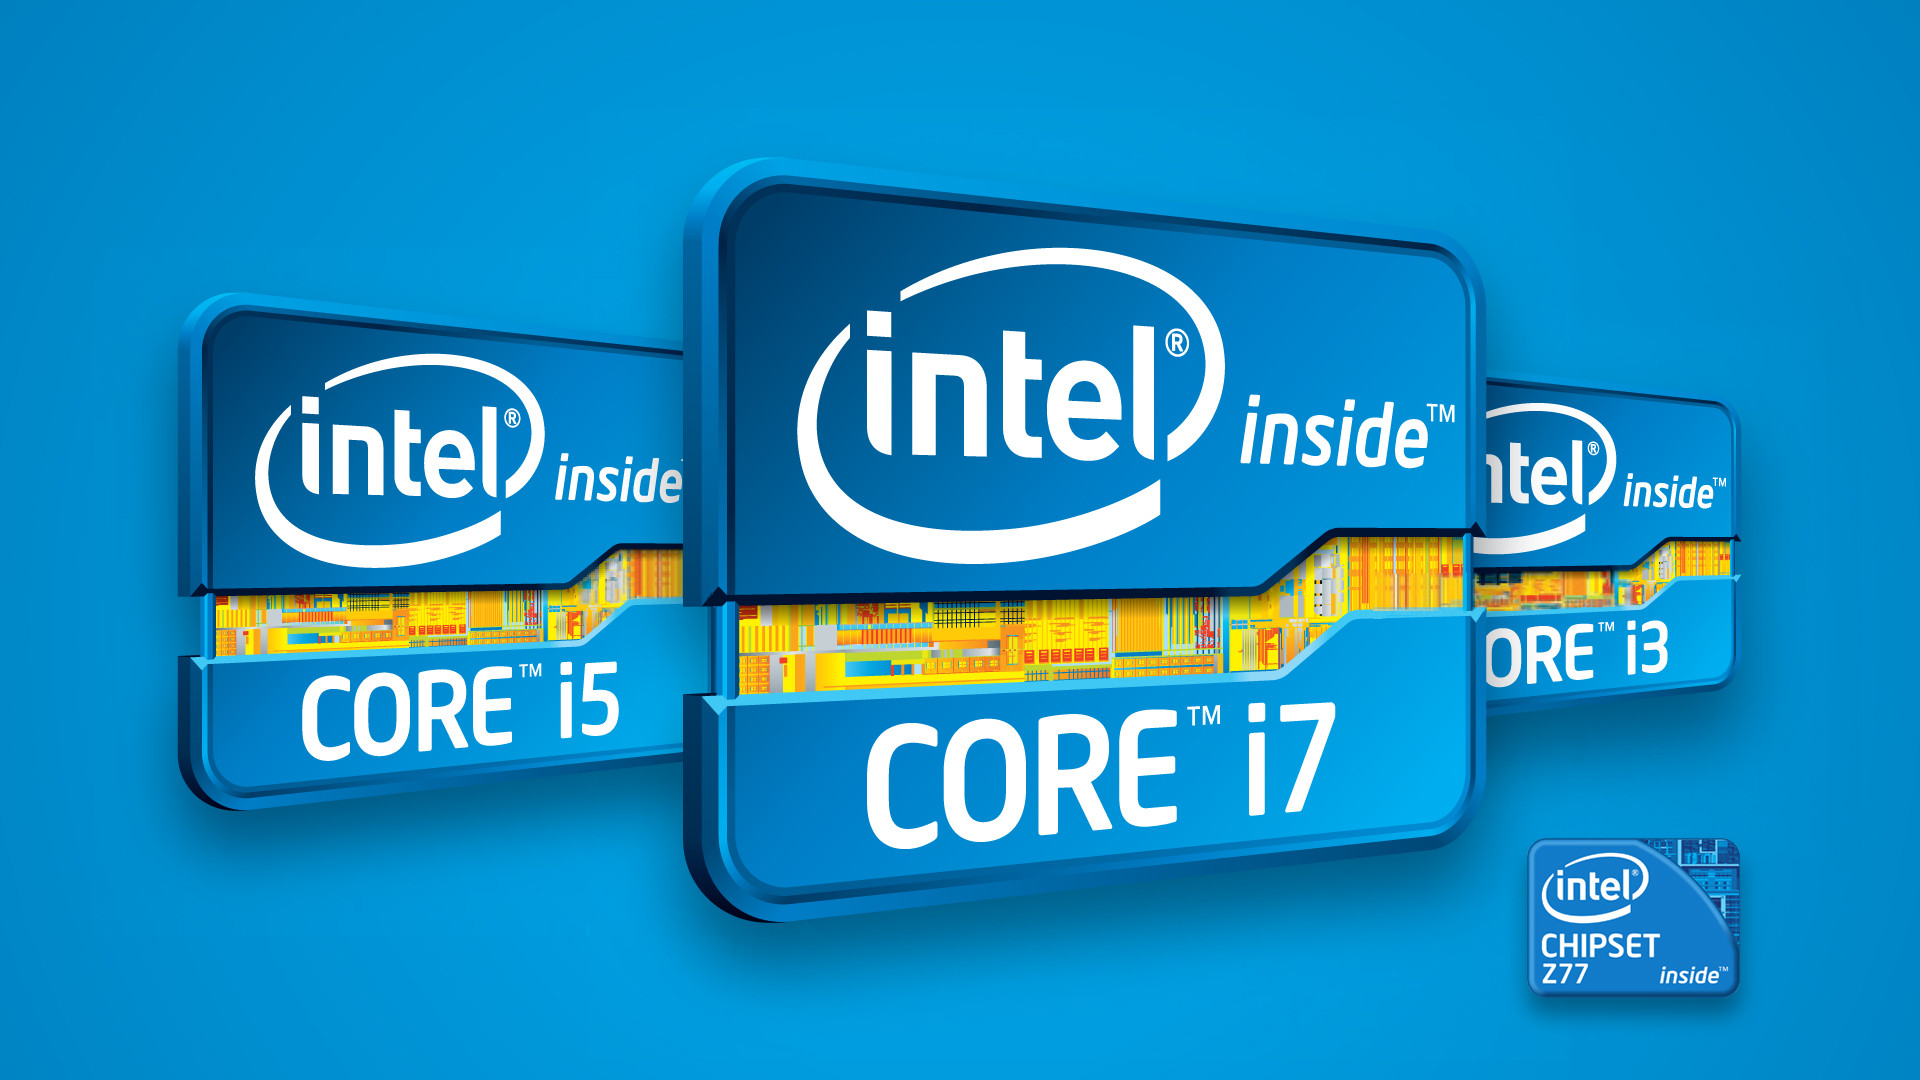 1920x1080 Download Intel Images HD.